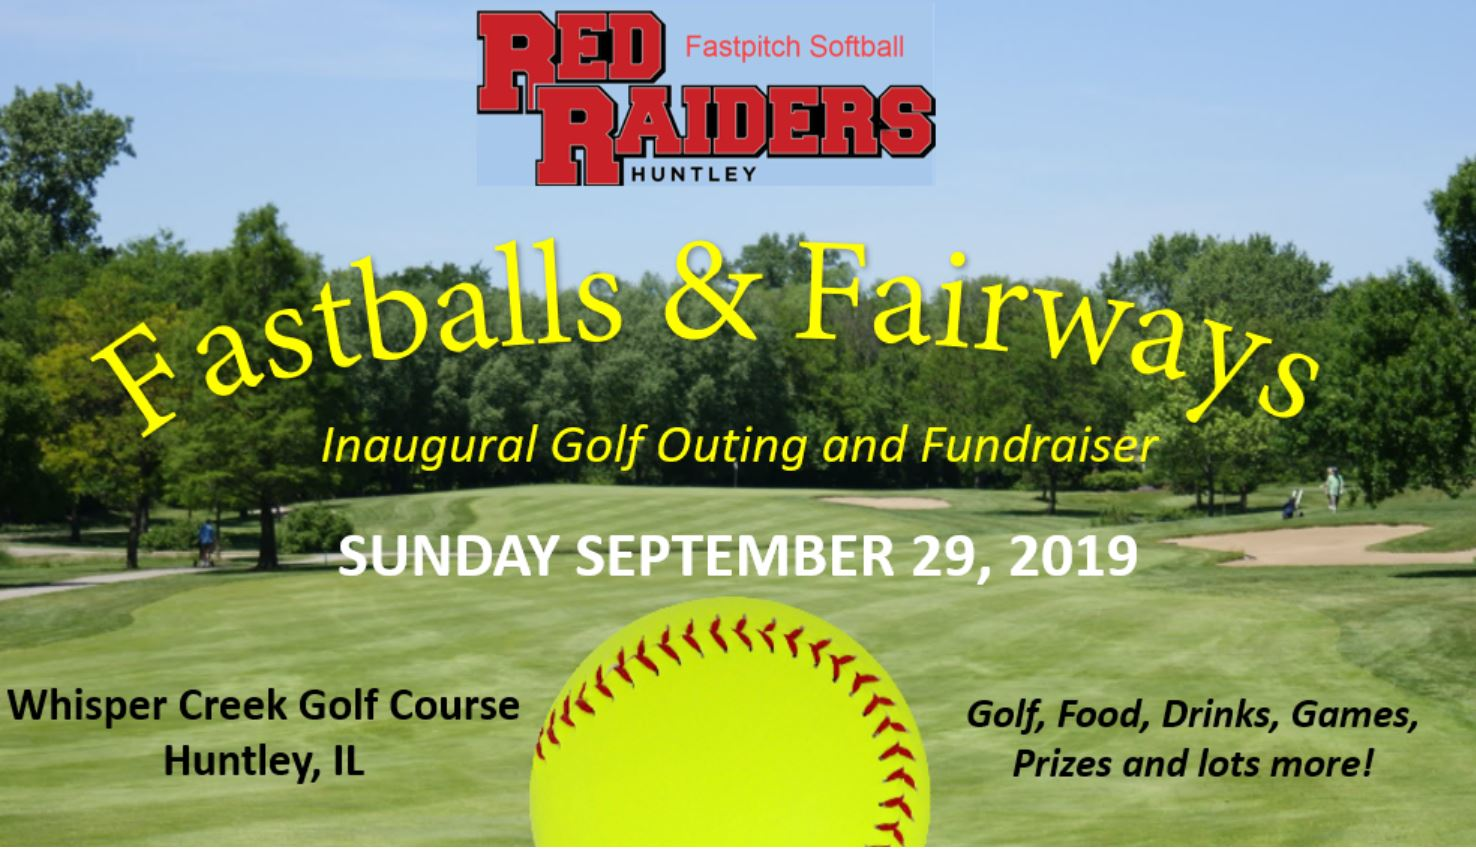 Fastballs & Fairways Golf Outing and Fundraiser - We simply wouldn't be the program we are without the help that our community businesses provide, and we thank you for your involvement!